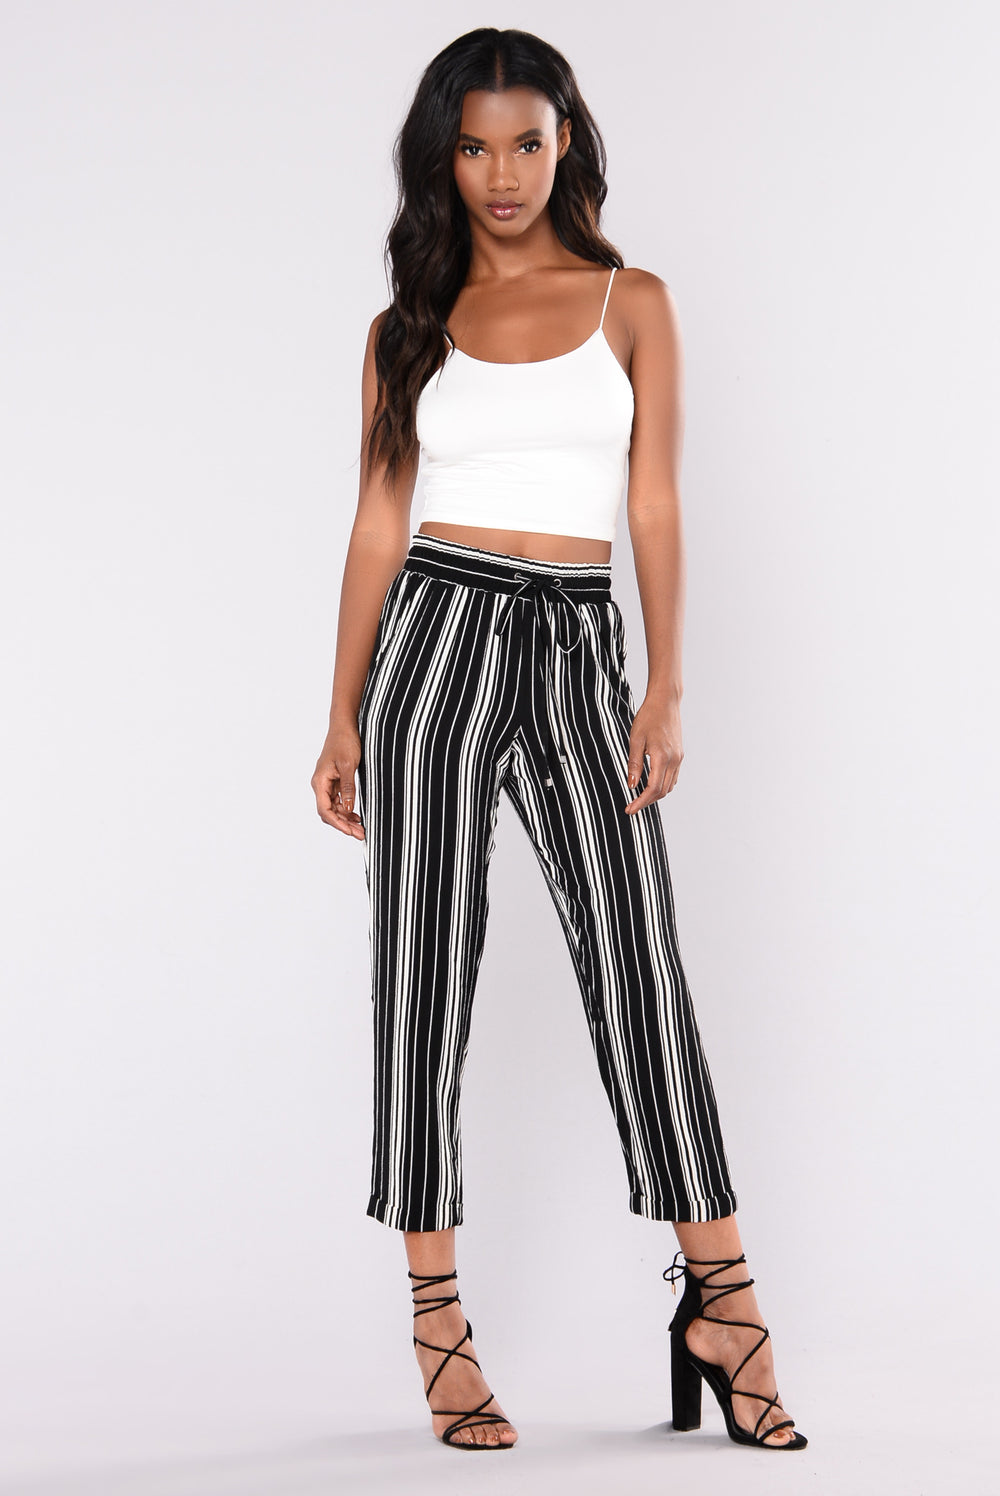 Striped pants are ubiquitous wardrobe pieces that fashion mavens seem to love incorporating into their ensembles. If you like the look of rocker chic, pair your striped pants with a .